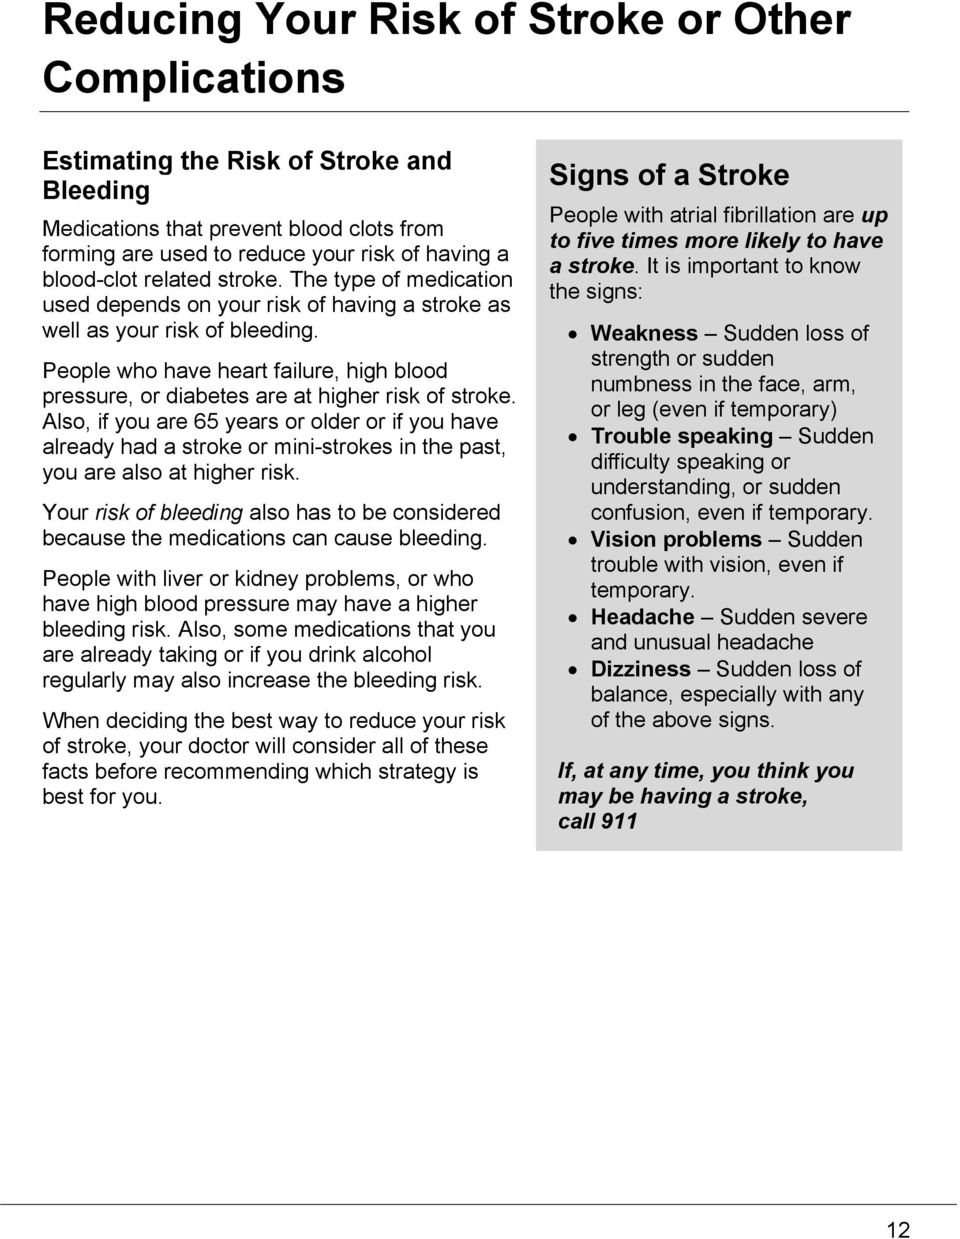 People who have heart failure, high blood pressure, or diabetes are at higher risk of stroke.